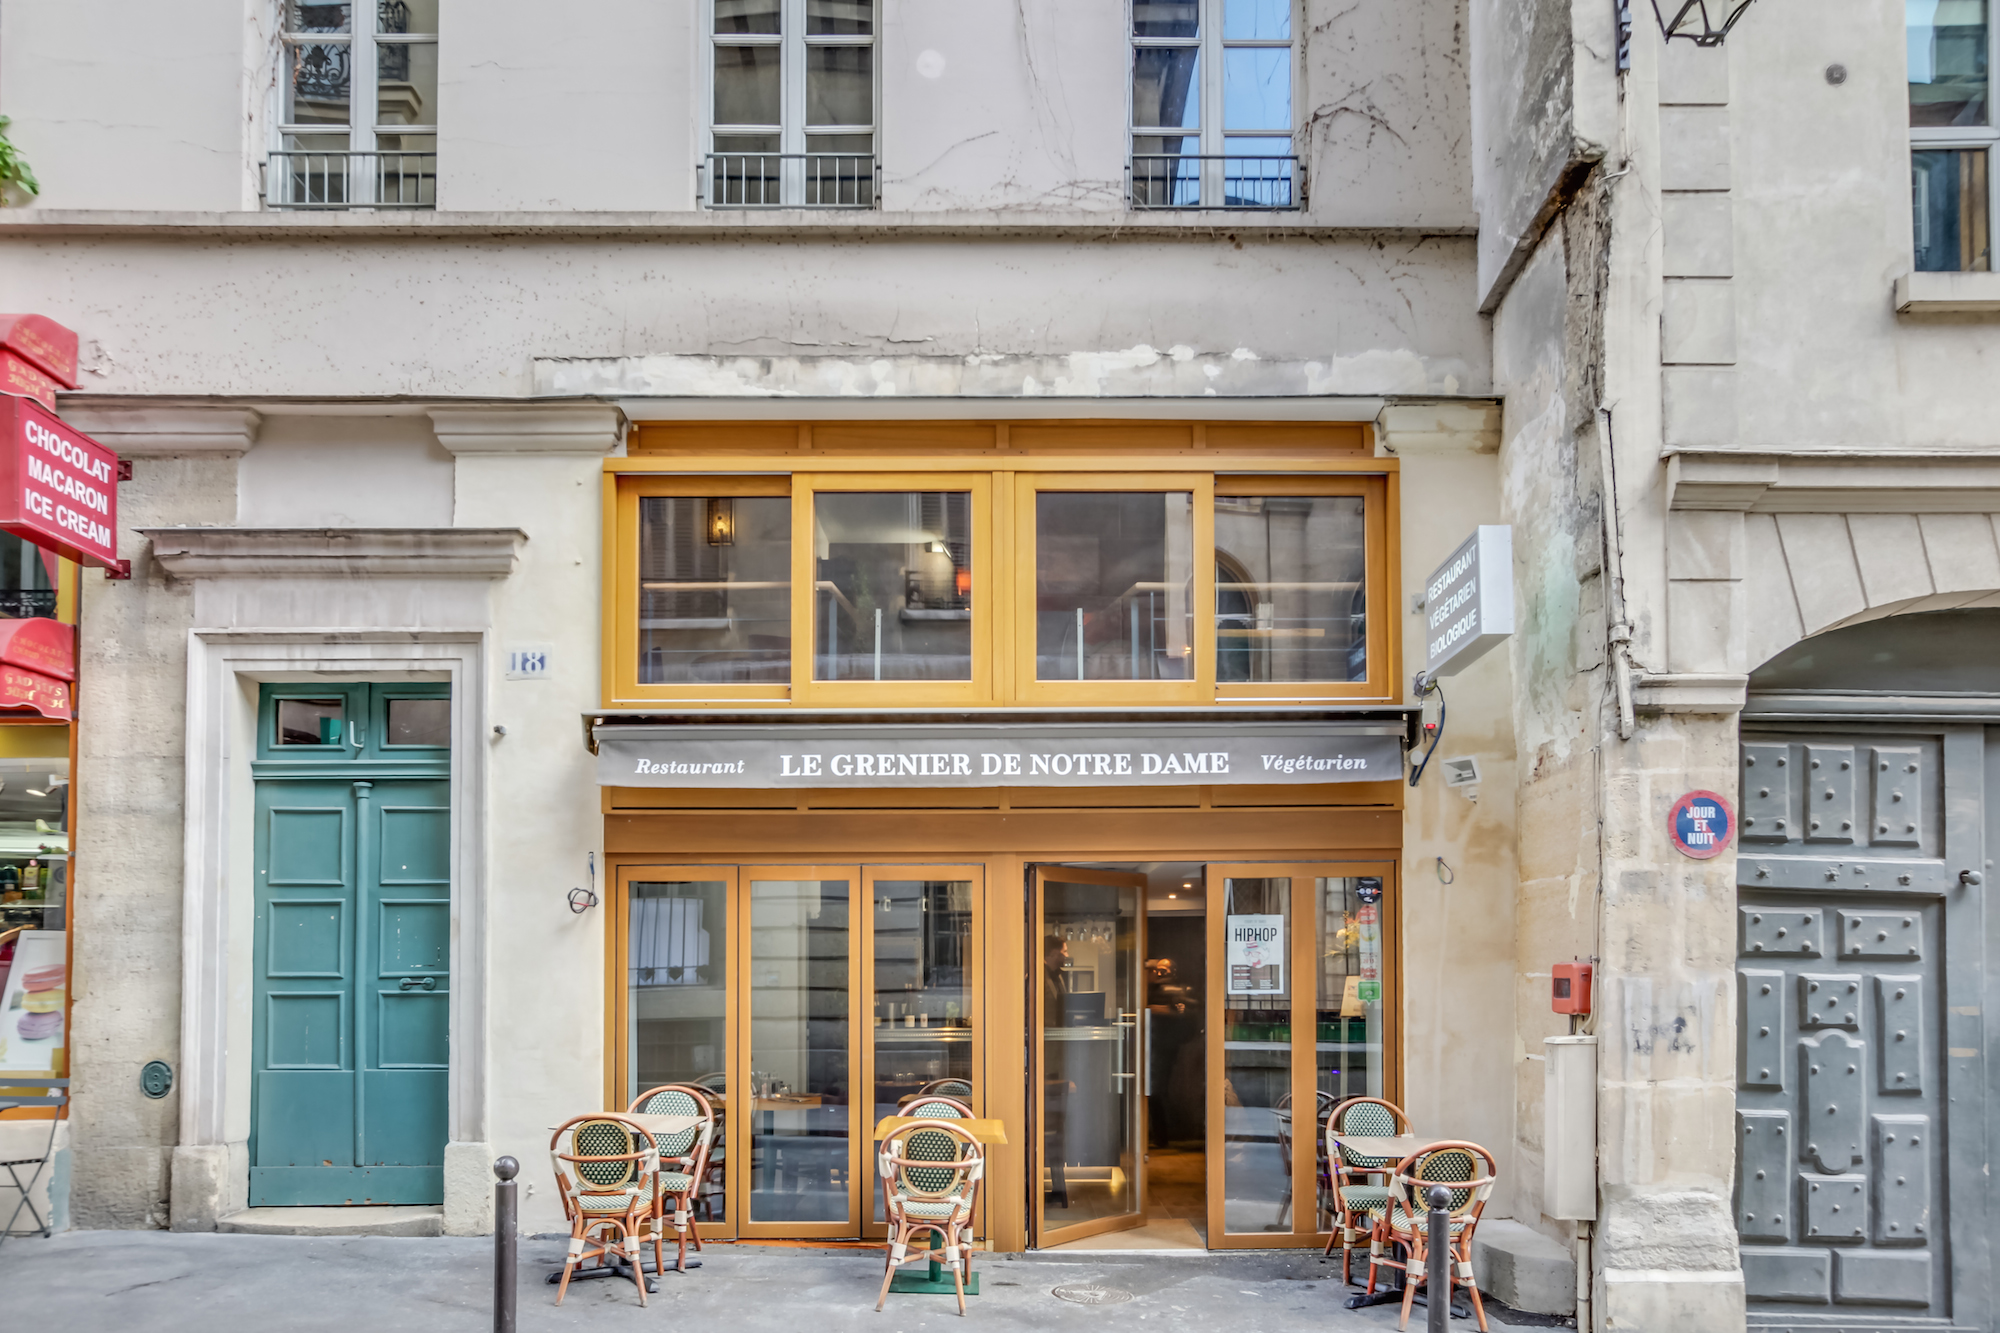 Healthy food in Paris at these top vegan places to eat French food like bistro Le Grenier de Notre Dame.